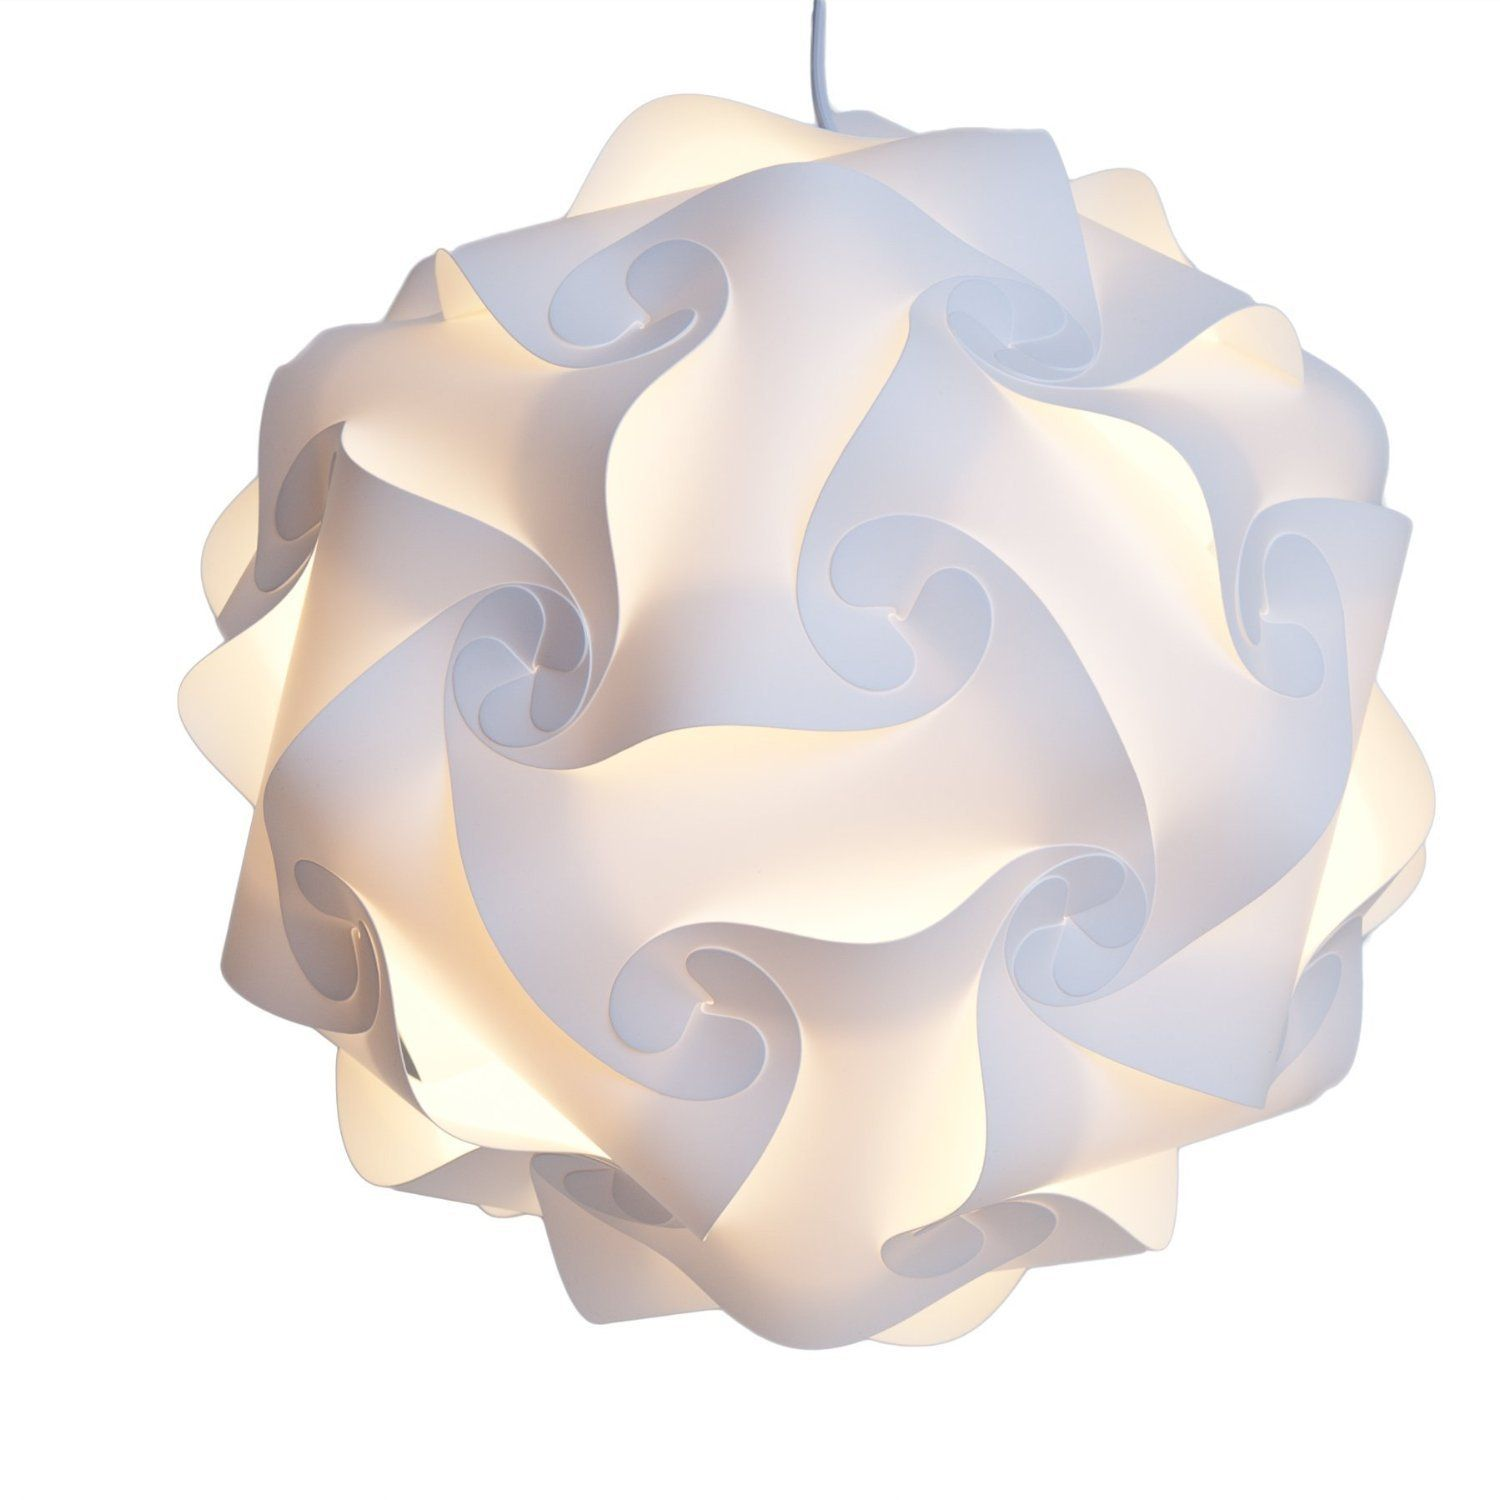 INFINITY LIGHTS Puzzle Light: White Modern Lamp Shade, X Large      AmazonSmile